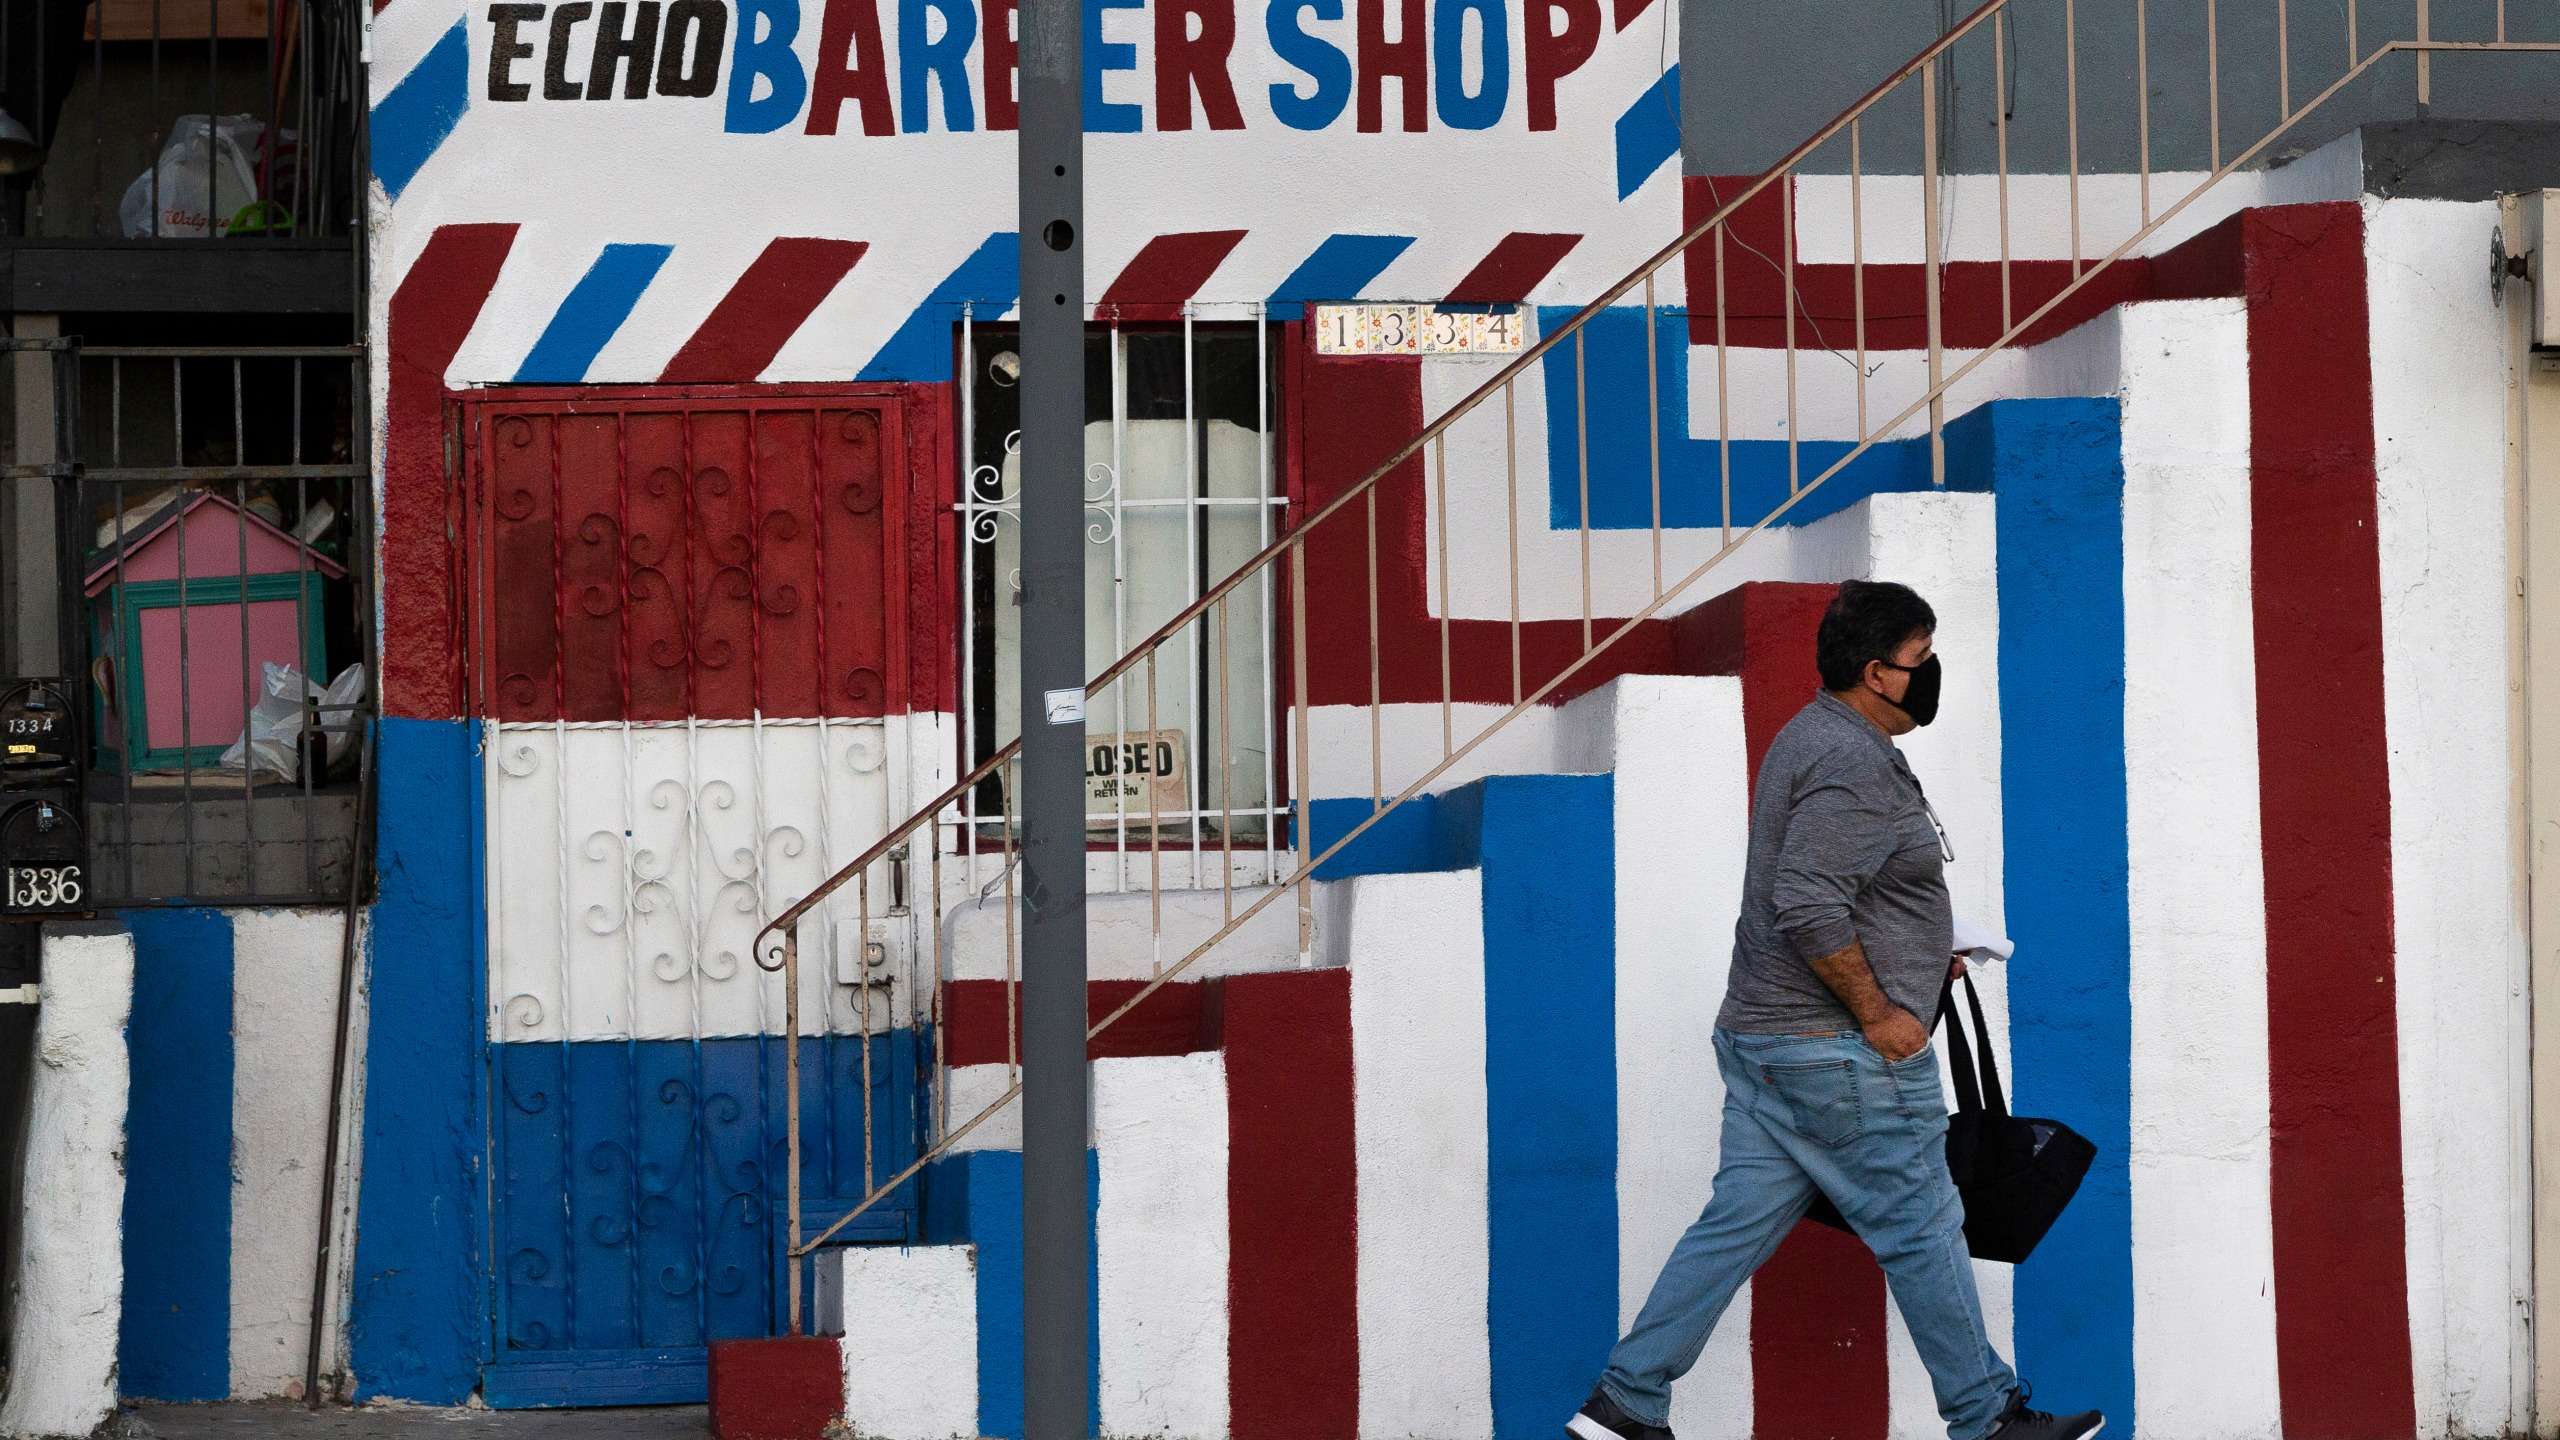 A pedestrian wears a mask as he walks past the closed Echo Barber Shop in Echo Park on May 8, 2020. (AP Photo/Damian Dovarganes)